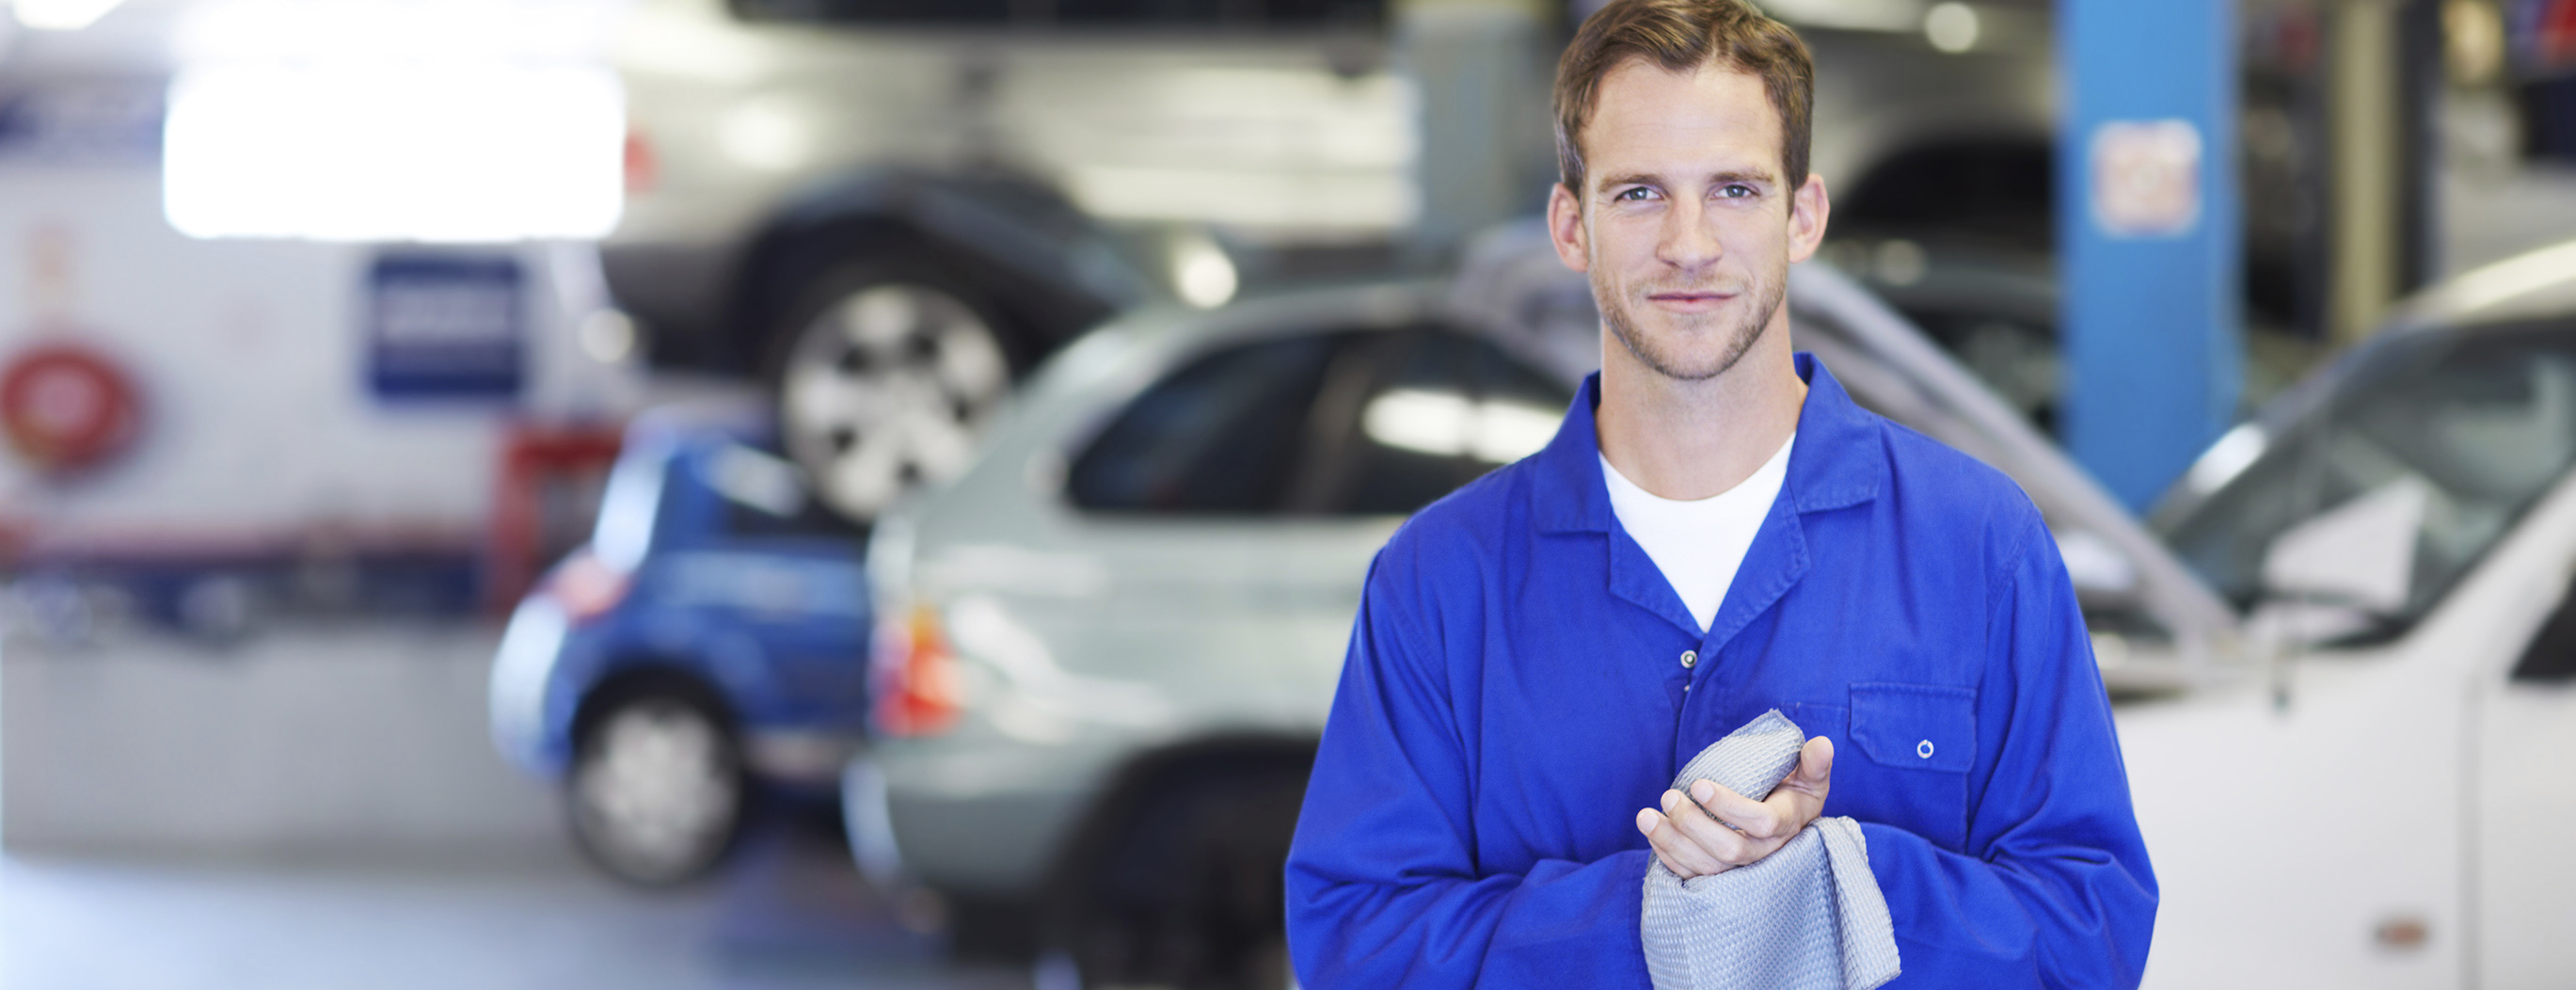 Our Technicians Are Here to Help!